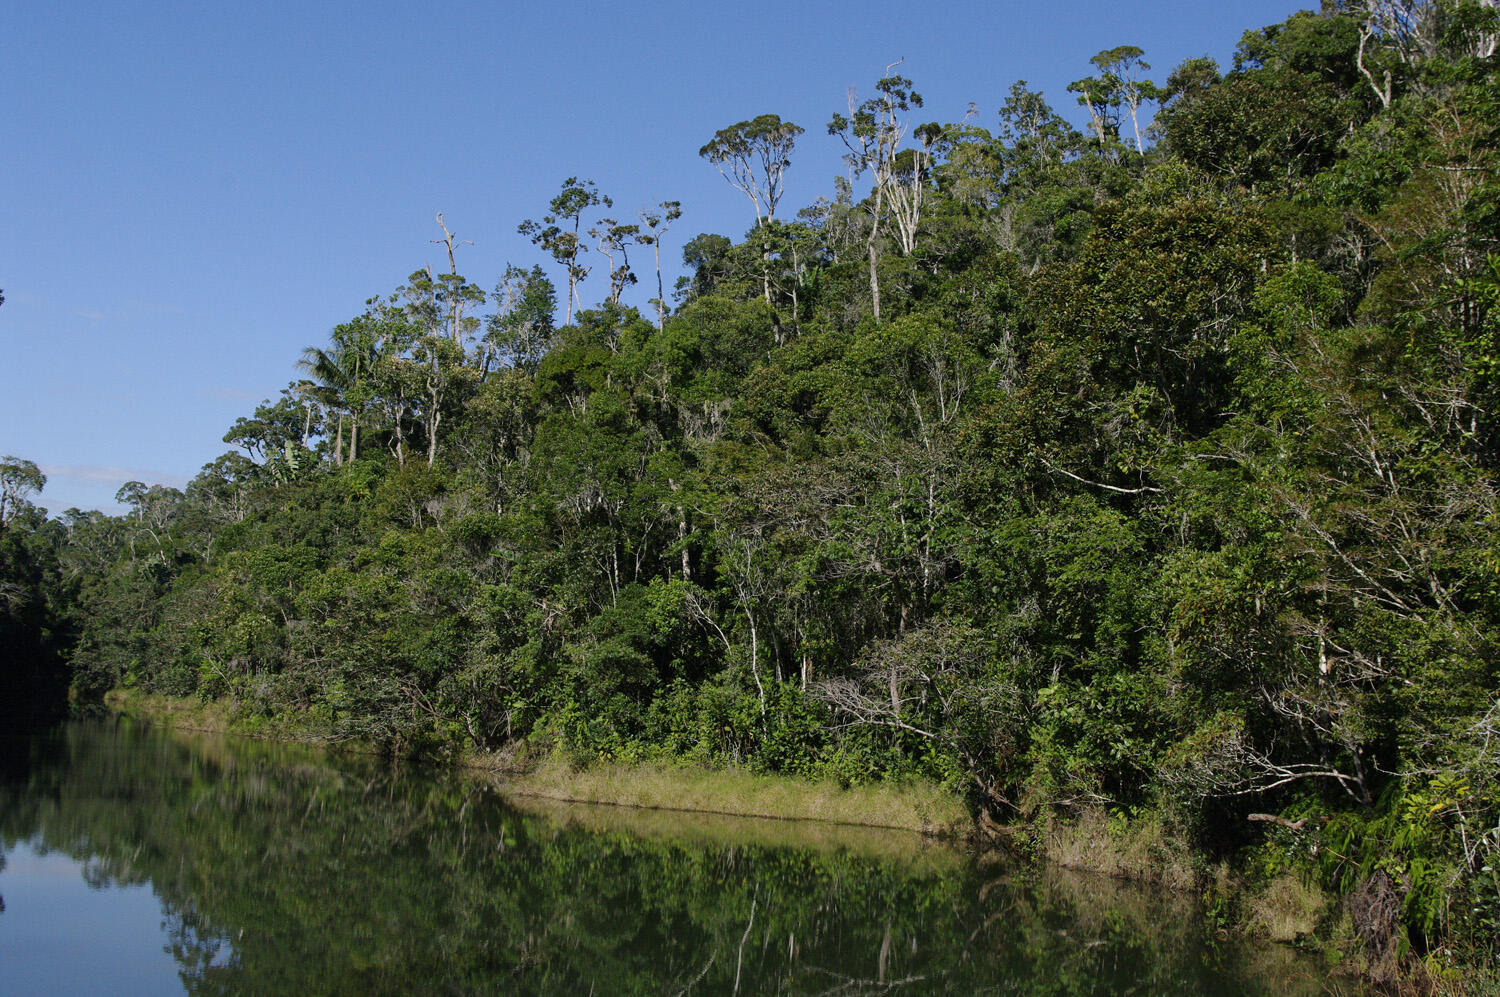 The Andasibe Mantadia forest